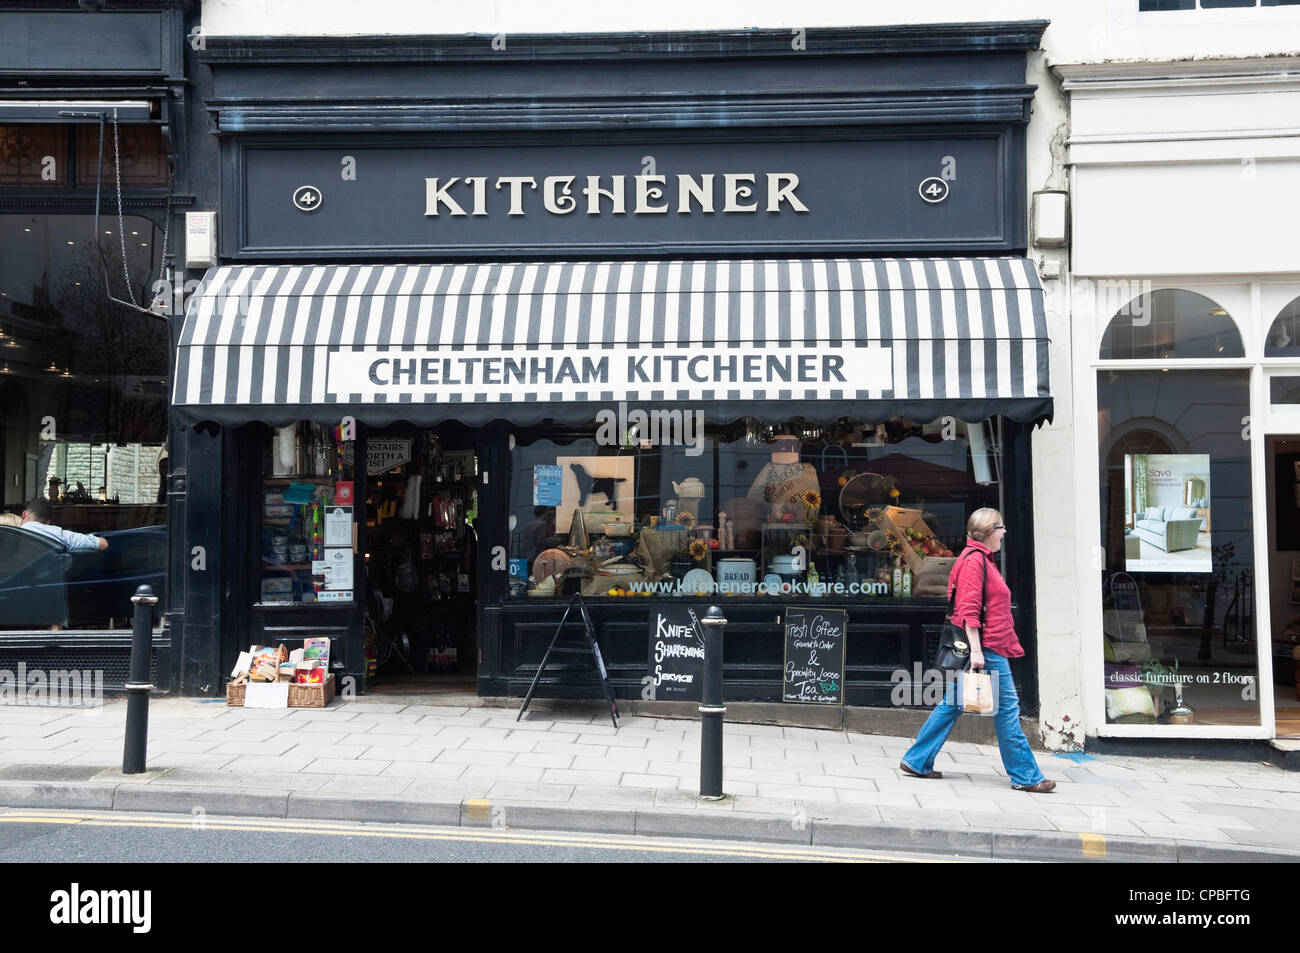 Cheltenham Kitchener - a specialist kitchen equipment shop, situated opposite the Queens Hotel, Montpellier,  Cheltenham, - Stock Image